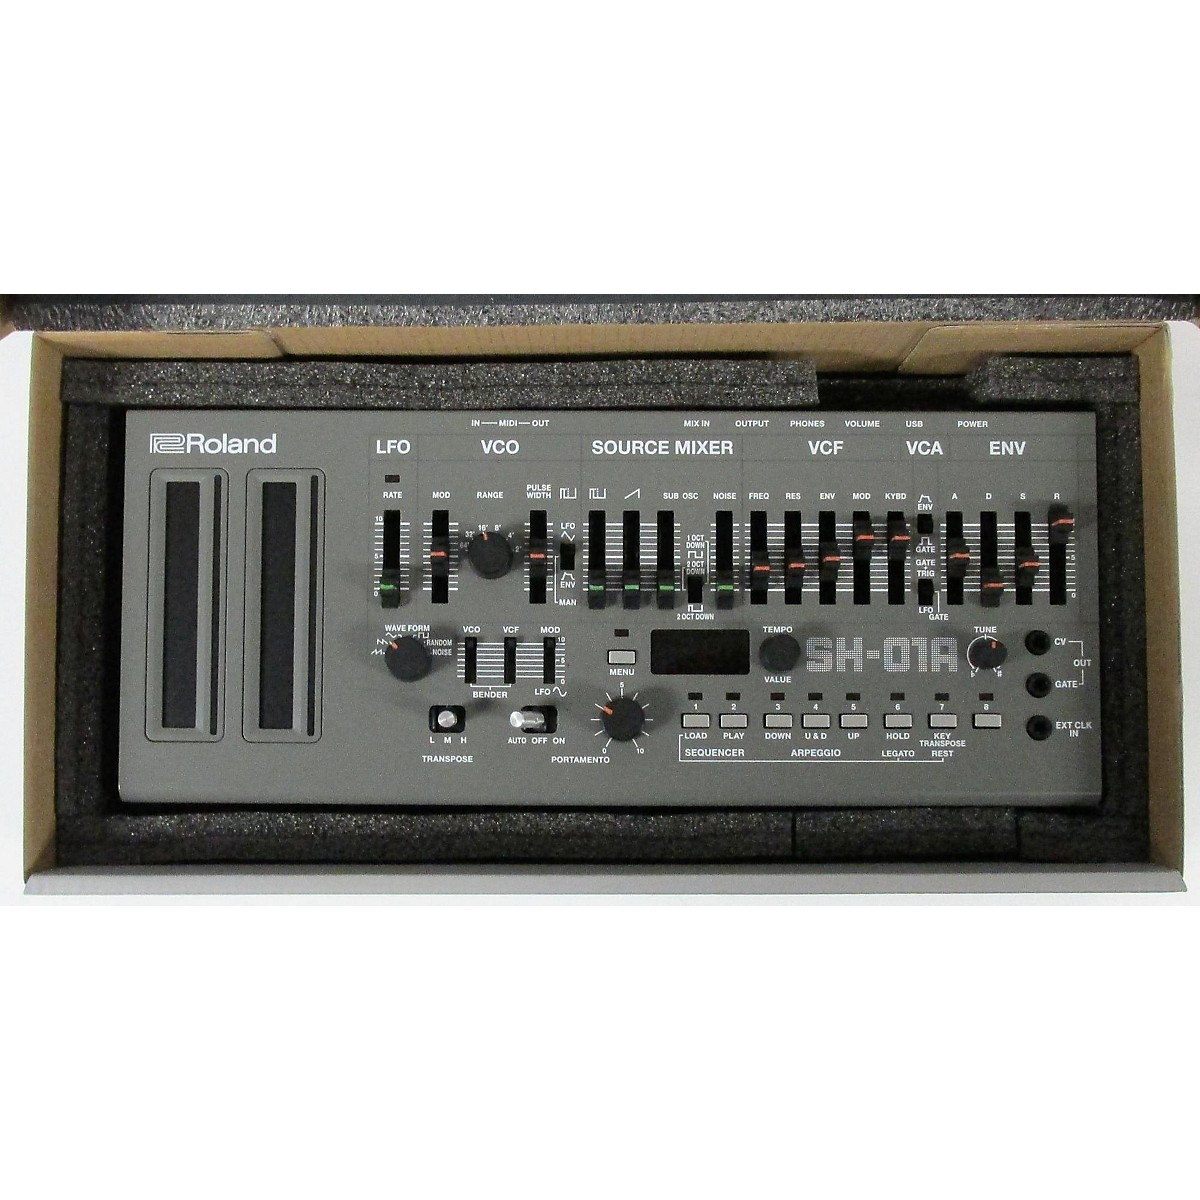 In Store Used Used Roalnd Sh-01a Module Synthesizer